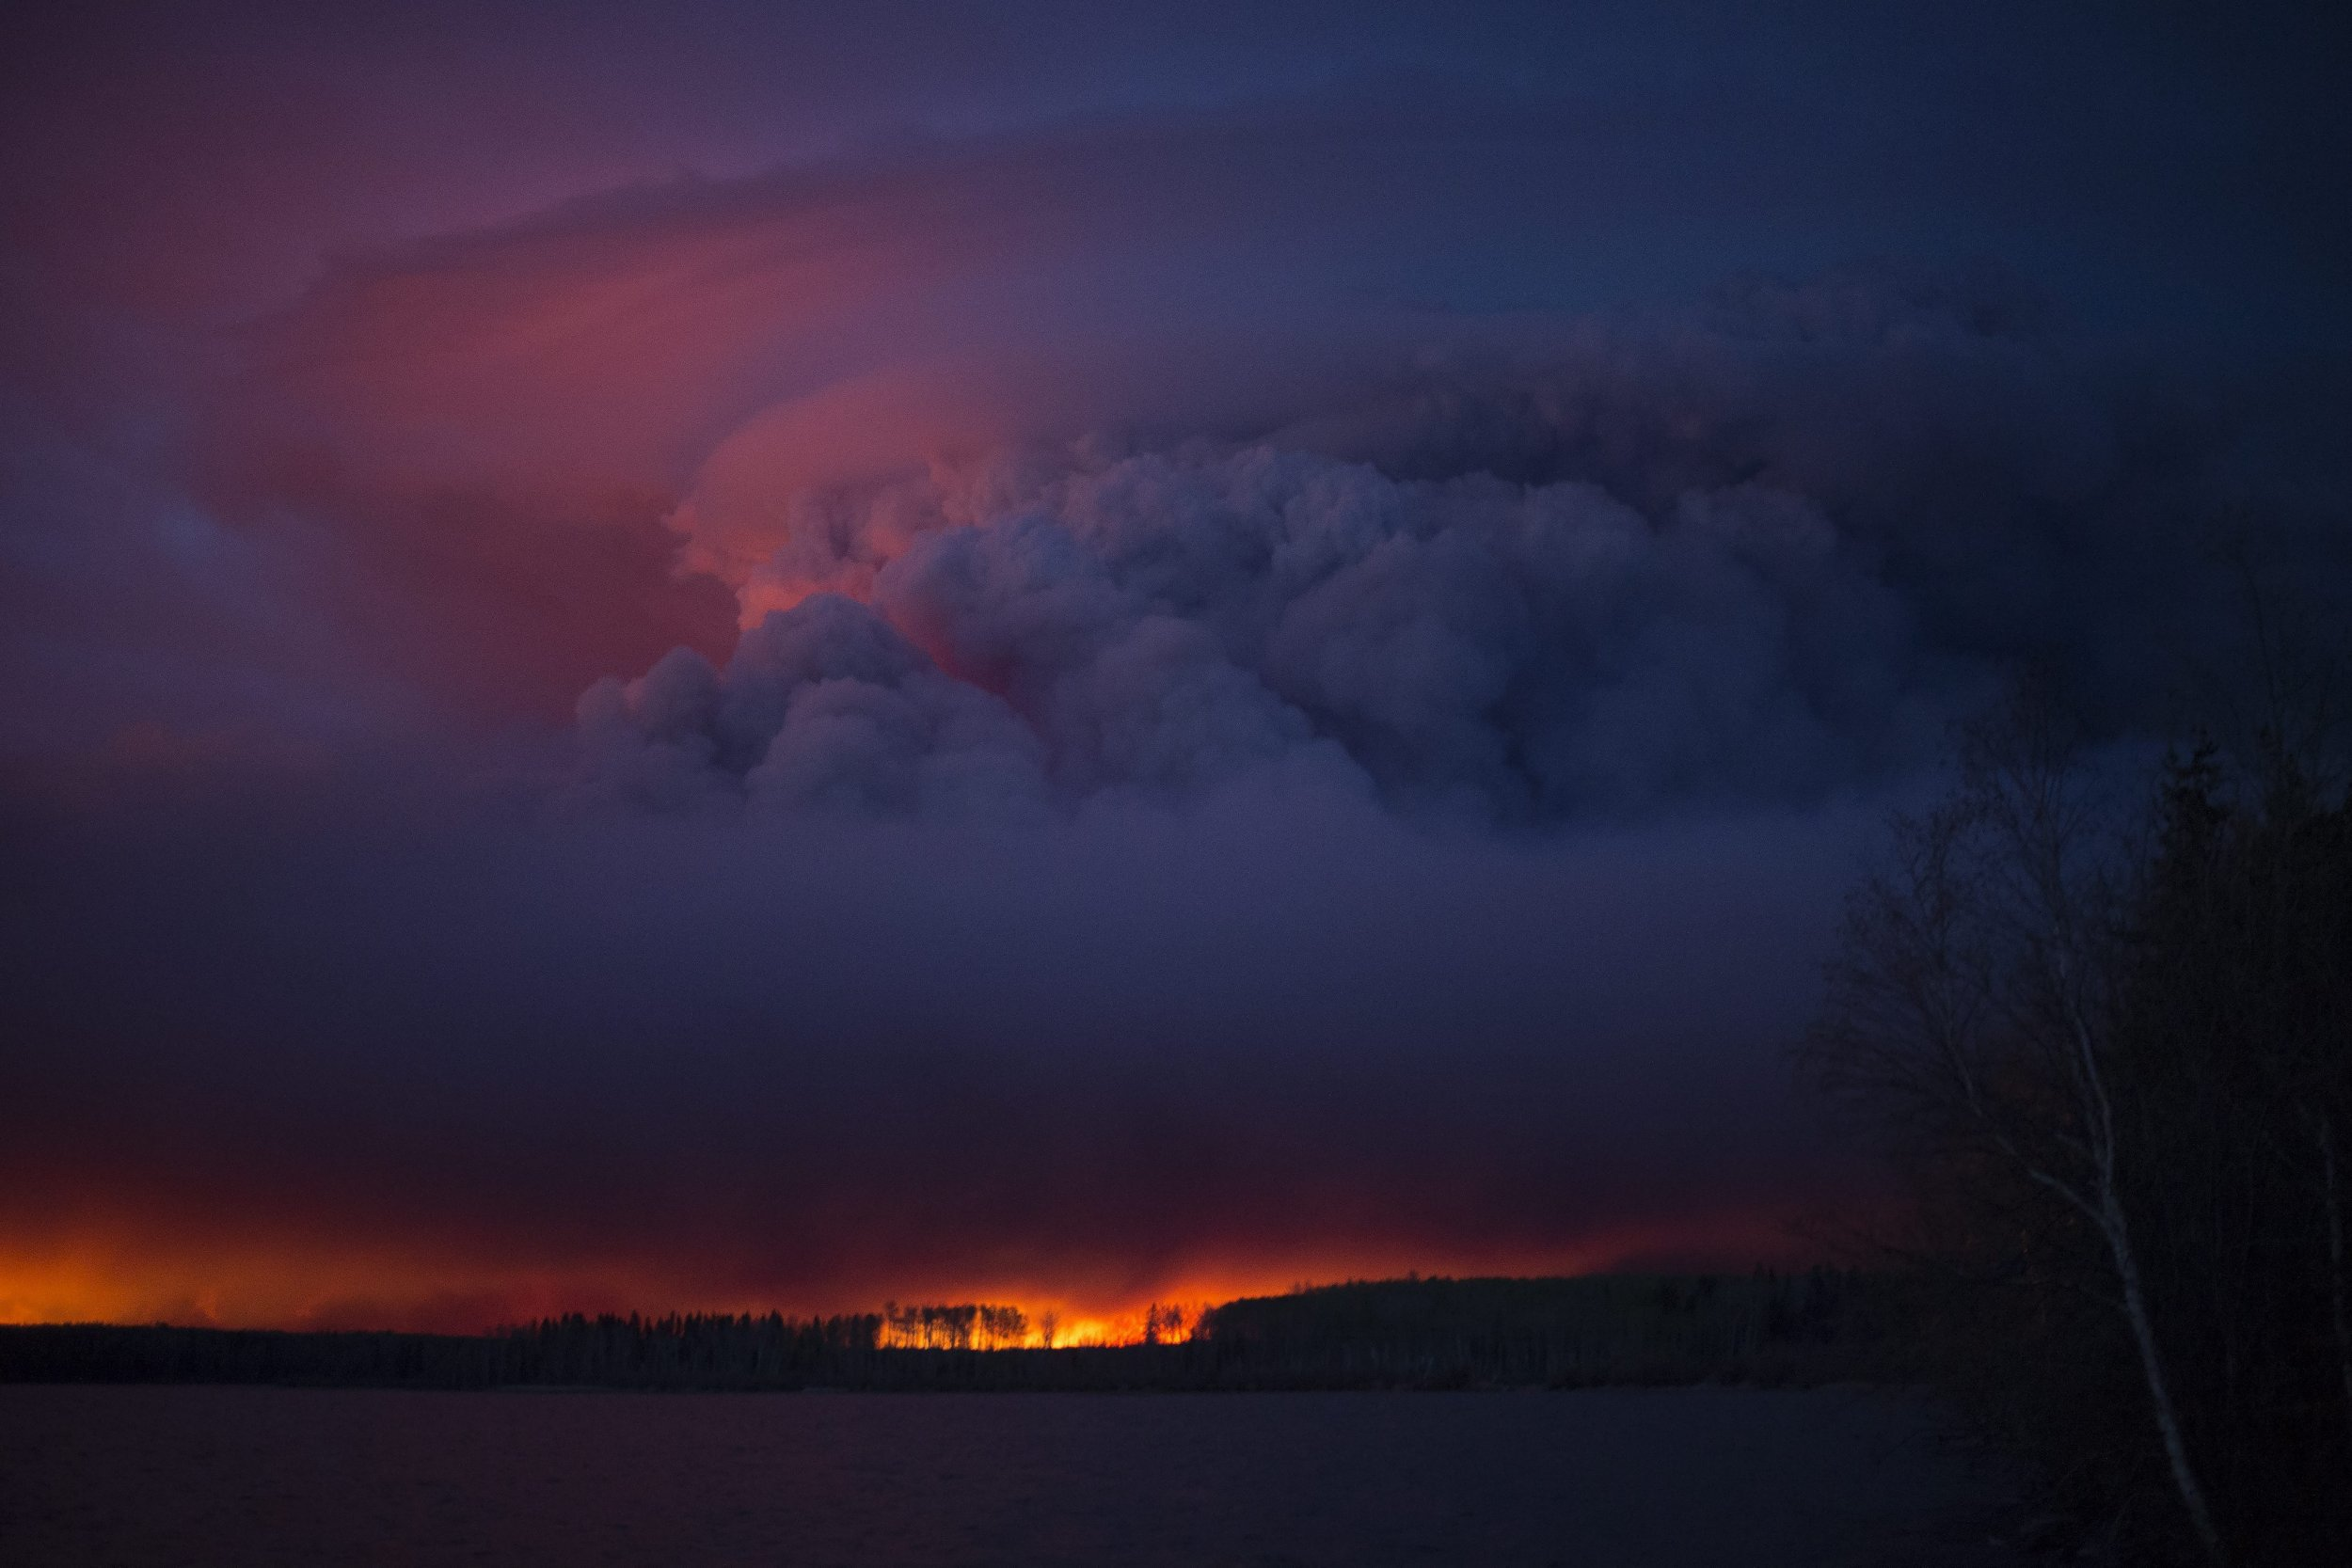 epa05291245 A handout photo provided by the Government of Alberta on 05 May 2016 shows a massive wildfire raging near Anzac, a hamlet 48 km southwest of Fort McMurray, Alberta, Canada, 04 May 2016. Weather conditions were making it more difficult to extinguish a forest fire that has forced the evacuation of some 80,000 people from the northwestern Canadian city of Fort McMurray. Alberta provincial authorities estimated that at least some 1,600 buildings in the city have been consumed by the flames, which have not caused any deaths or injuries so far. EPA/CHRIS SCHWARZ / GOVERNMENT OF ALBERTA / HANDOUT EPA/CHRIS SCHWARZ / GOVERNMENT OF ALBERTA / HANDOUT HANDOUT EDITORIAL USE ONLY/NO SALES